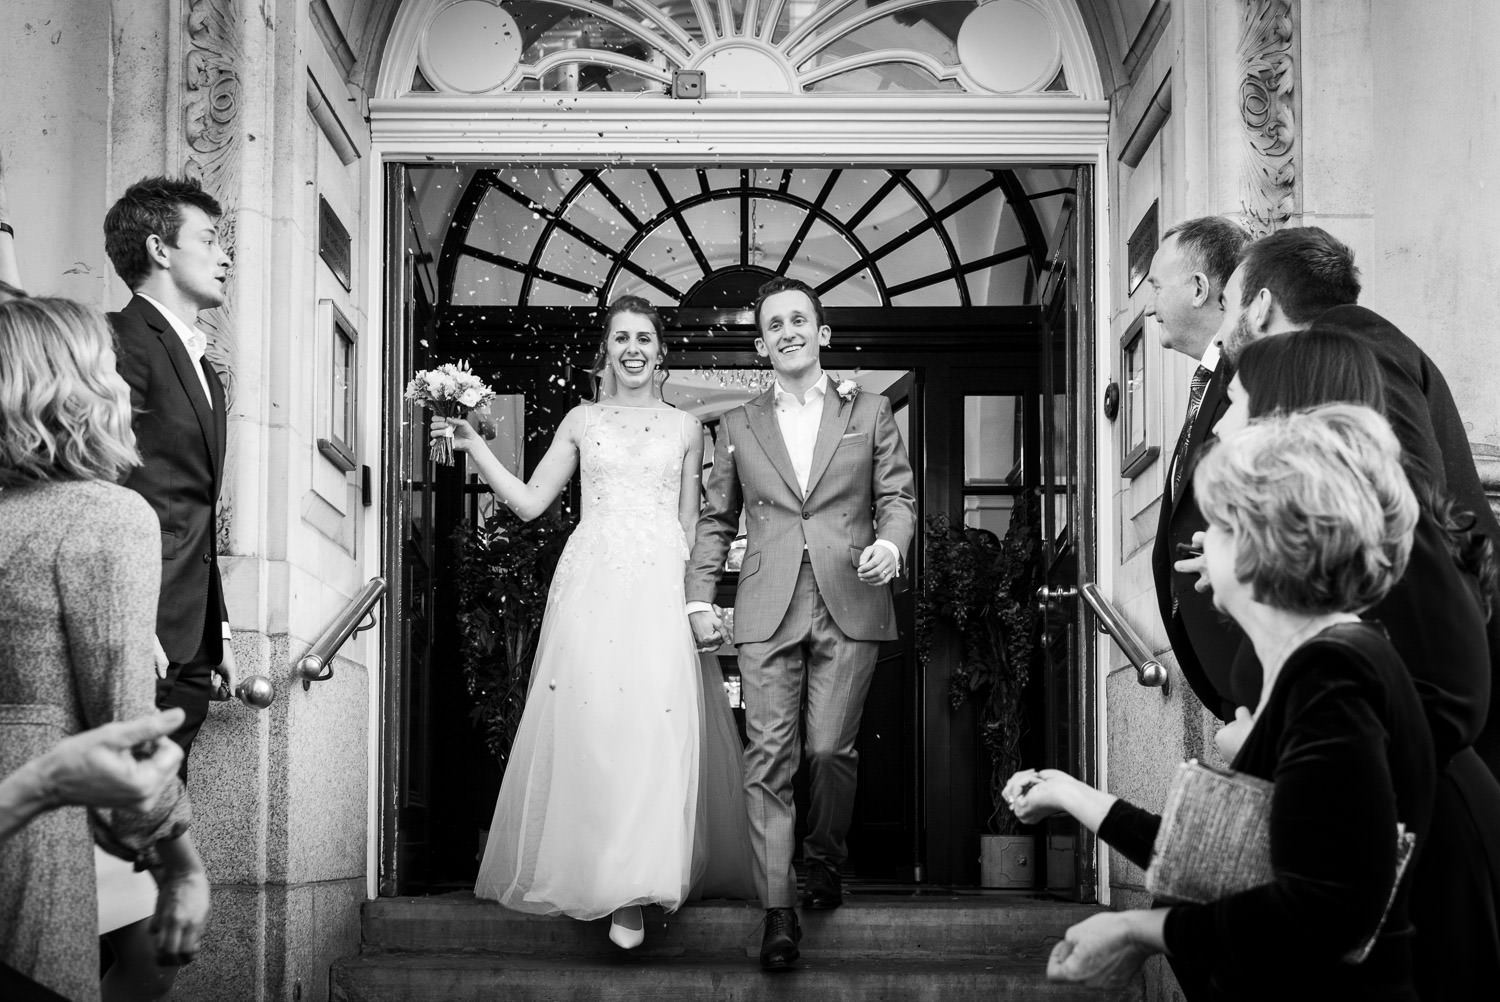 Couple during wedding at Chelsea Register Office photographed on the steps with confetti